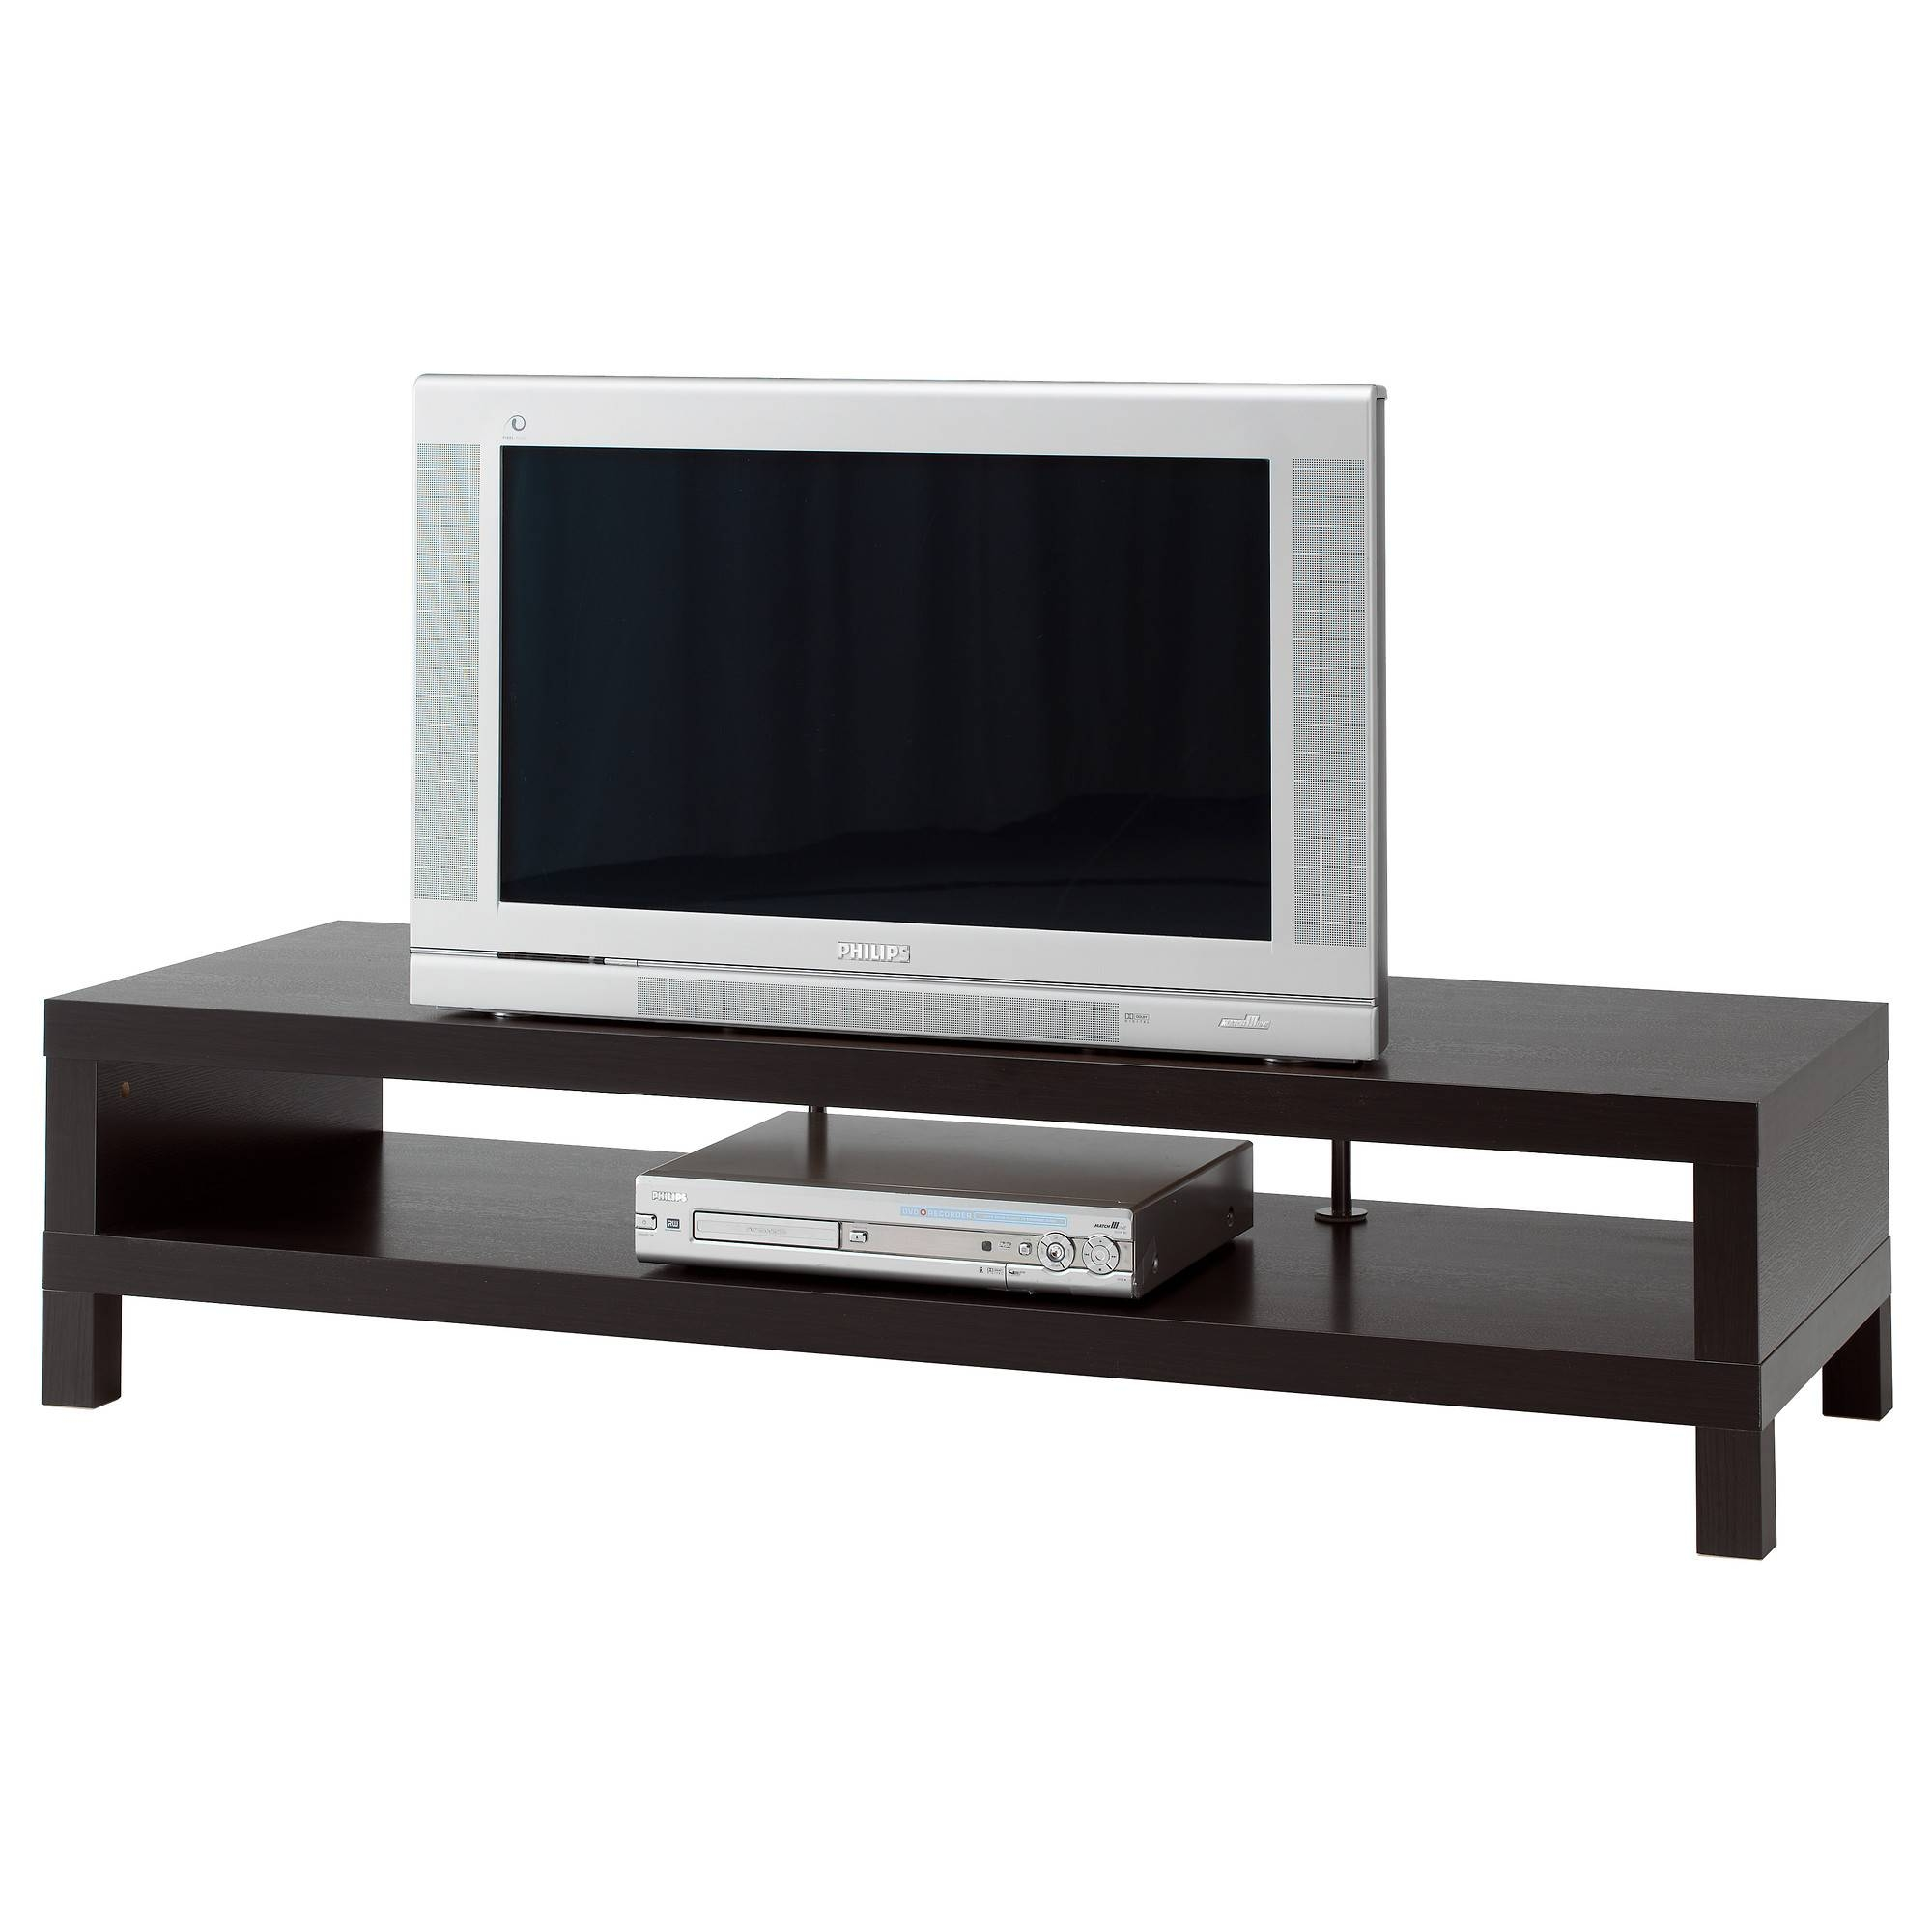 Lack Tv Unit - Ikea intended for Tv Table (Image 7 of 15)